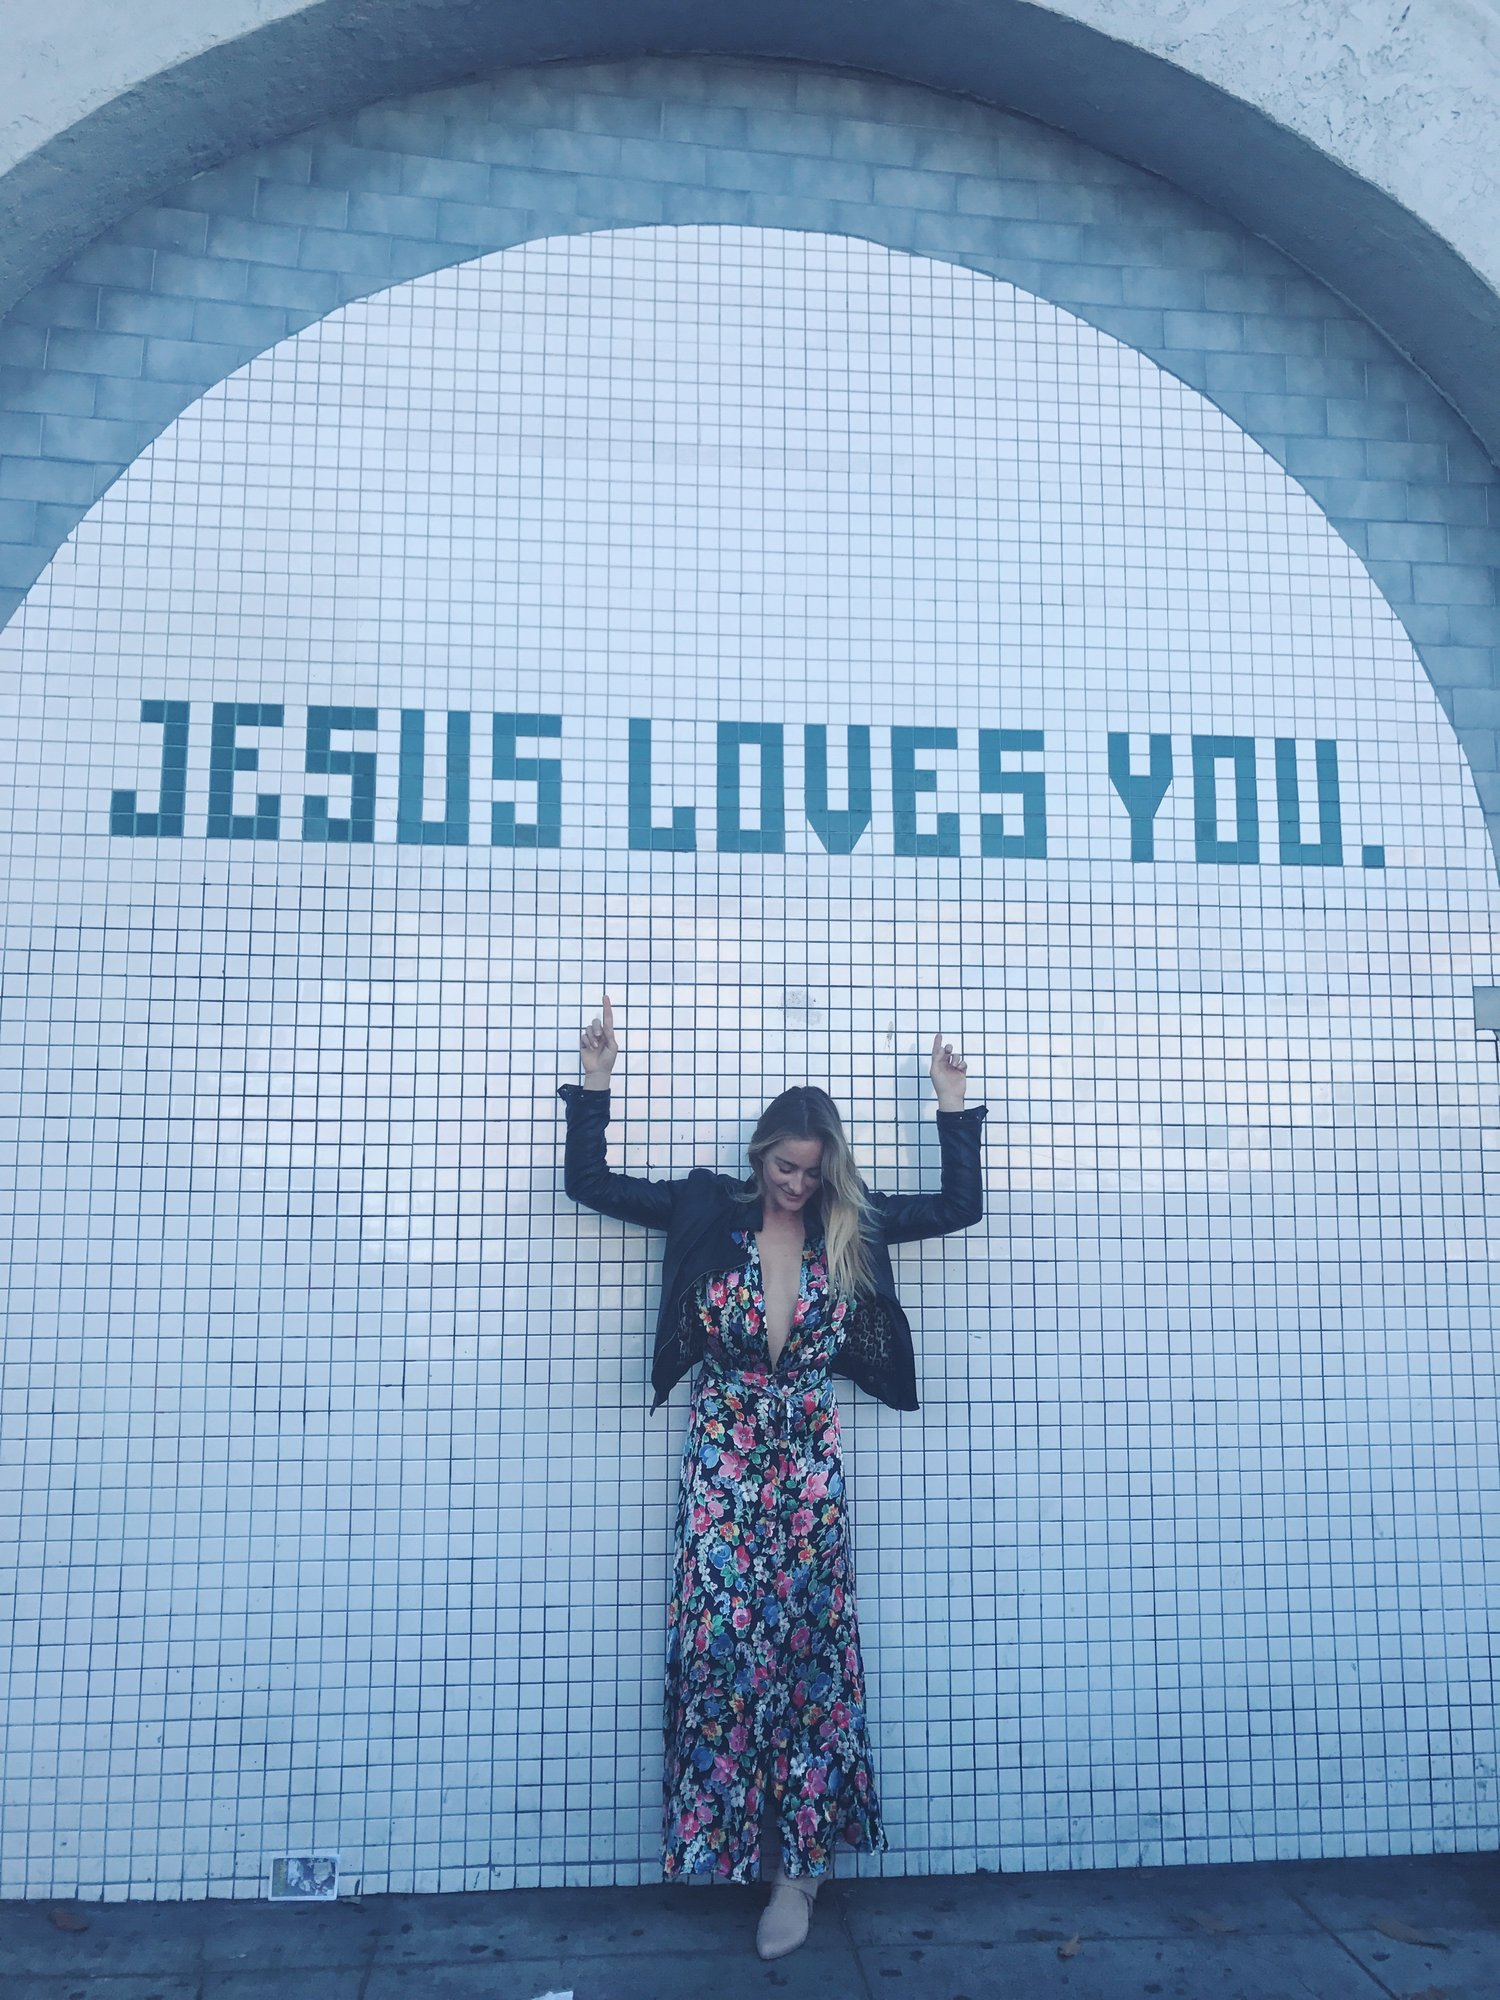 Having fun in the Mission with my BFF // you are loved!